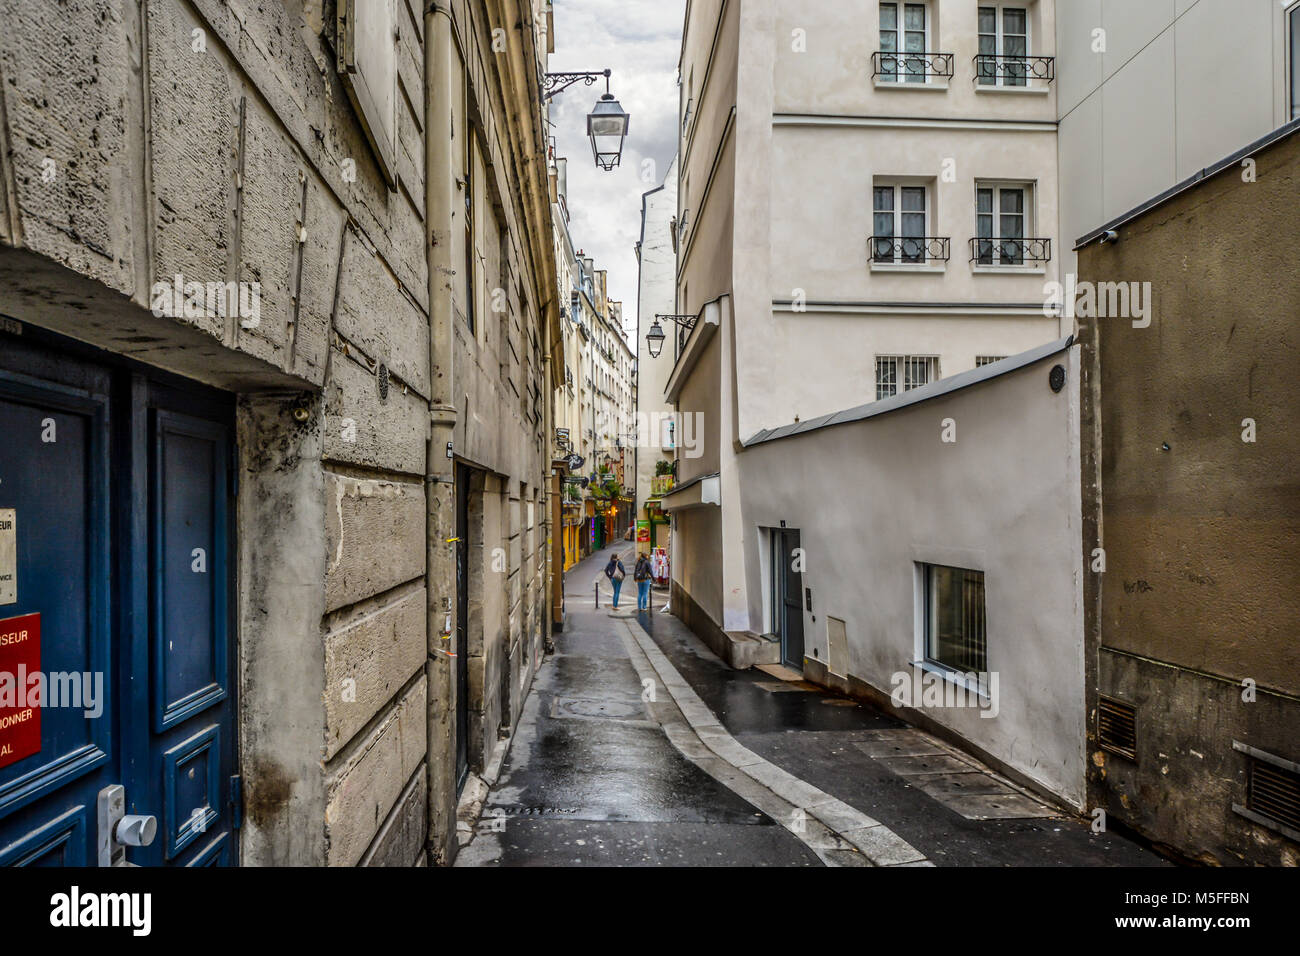 Two young ladies on an early morning walk in the Latin Quarter of Paris France pass through a narrow back alley - Stock Image